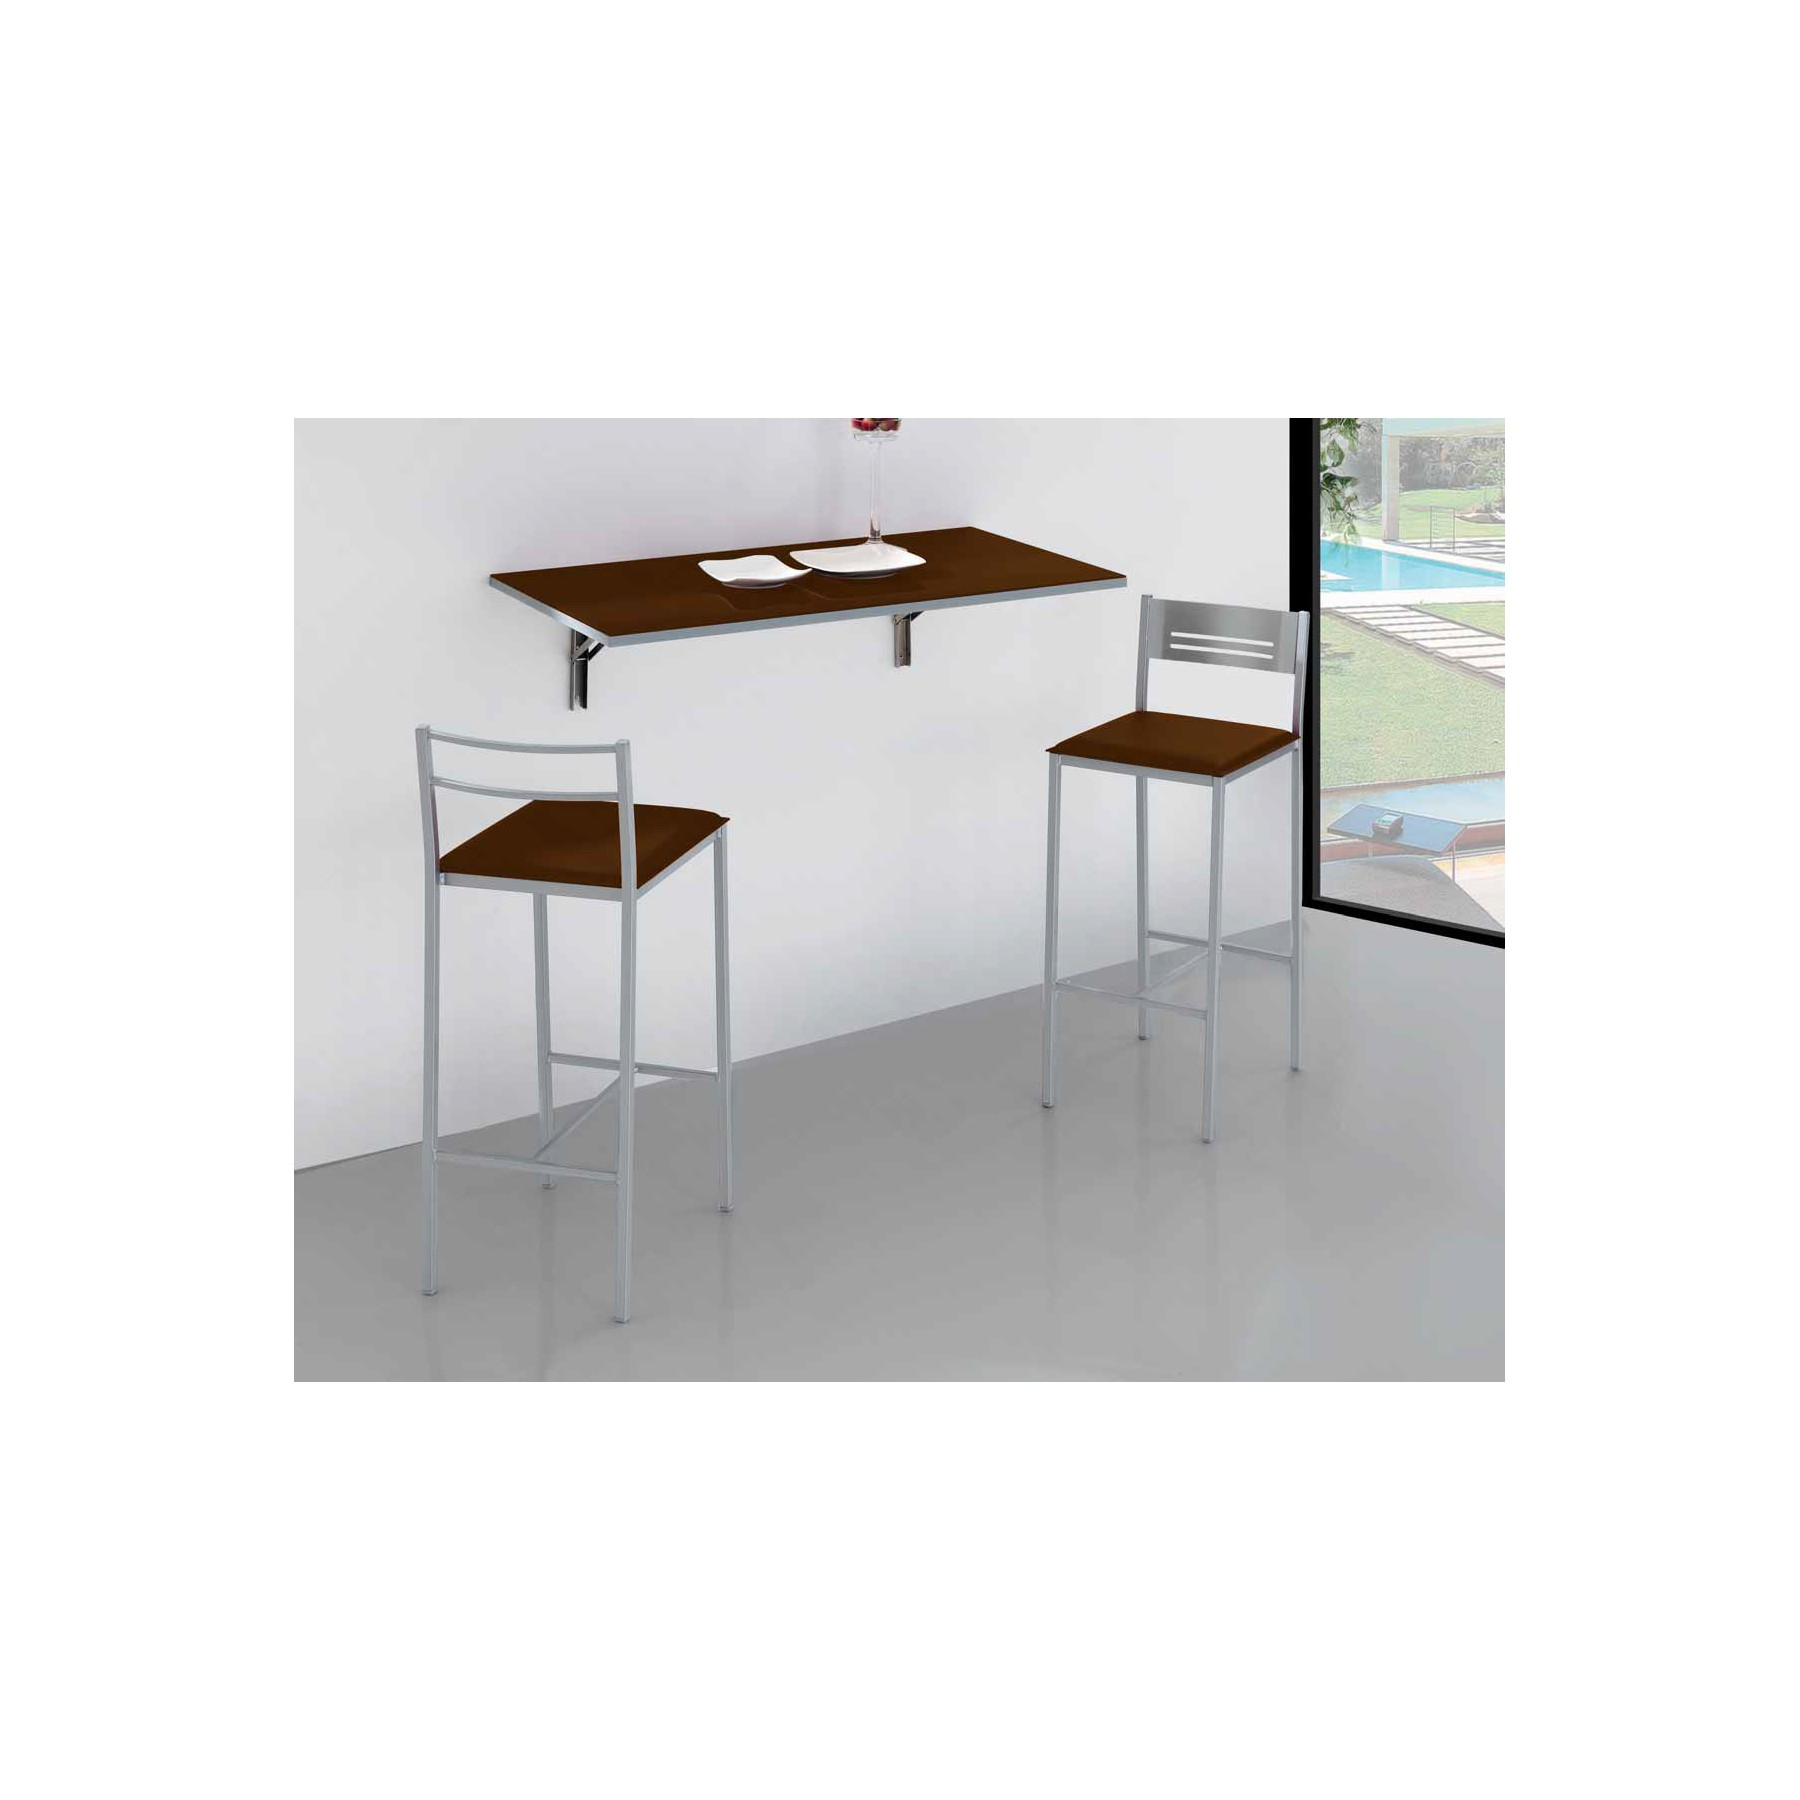 Mesa de cocina de pared plegable simple dkg - Mesa plegable pared cocina ...